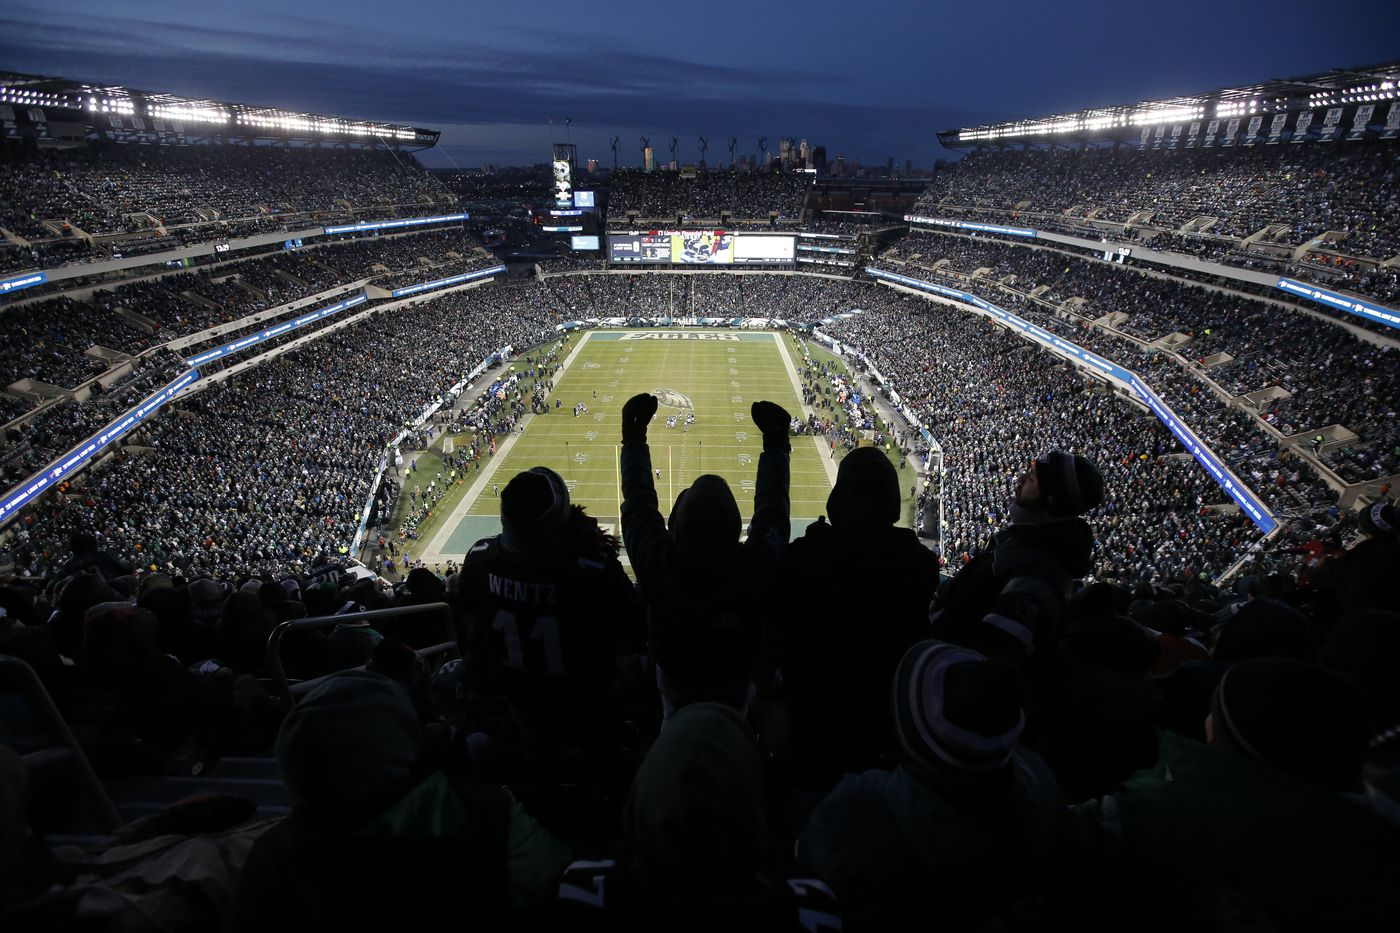 What's new at Lincoln Financial Field this season